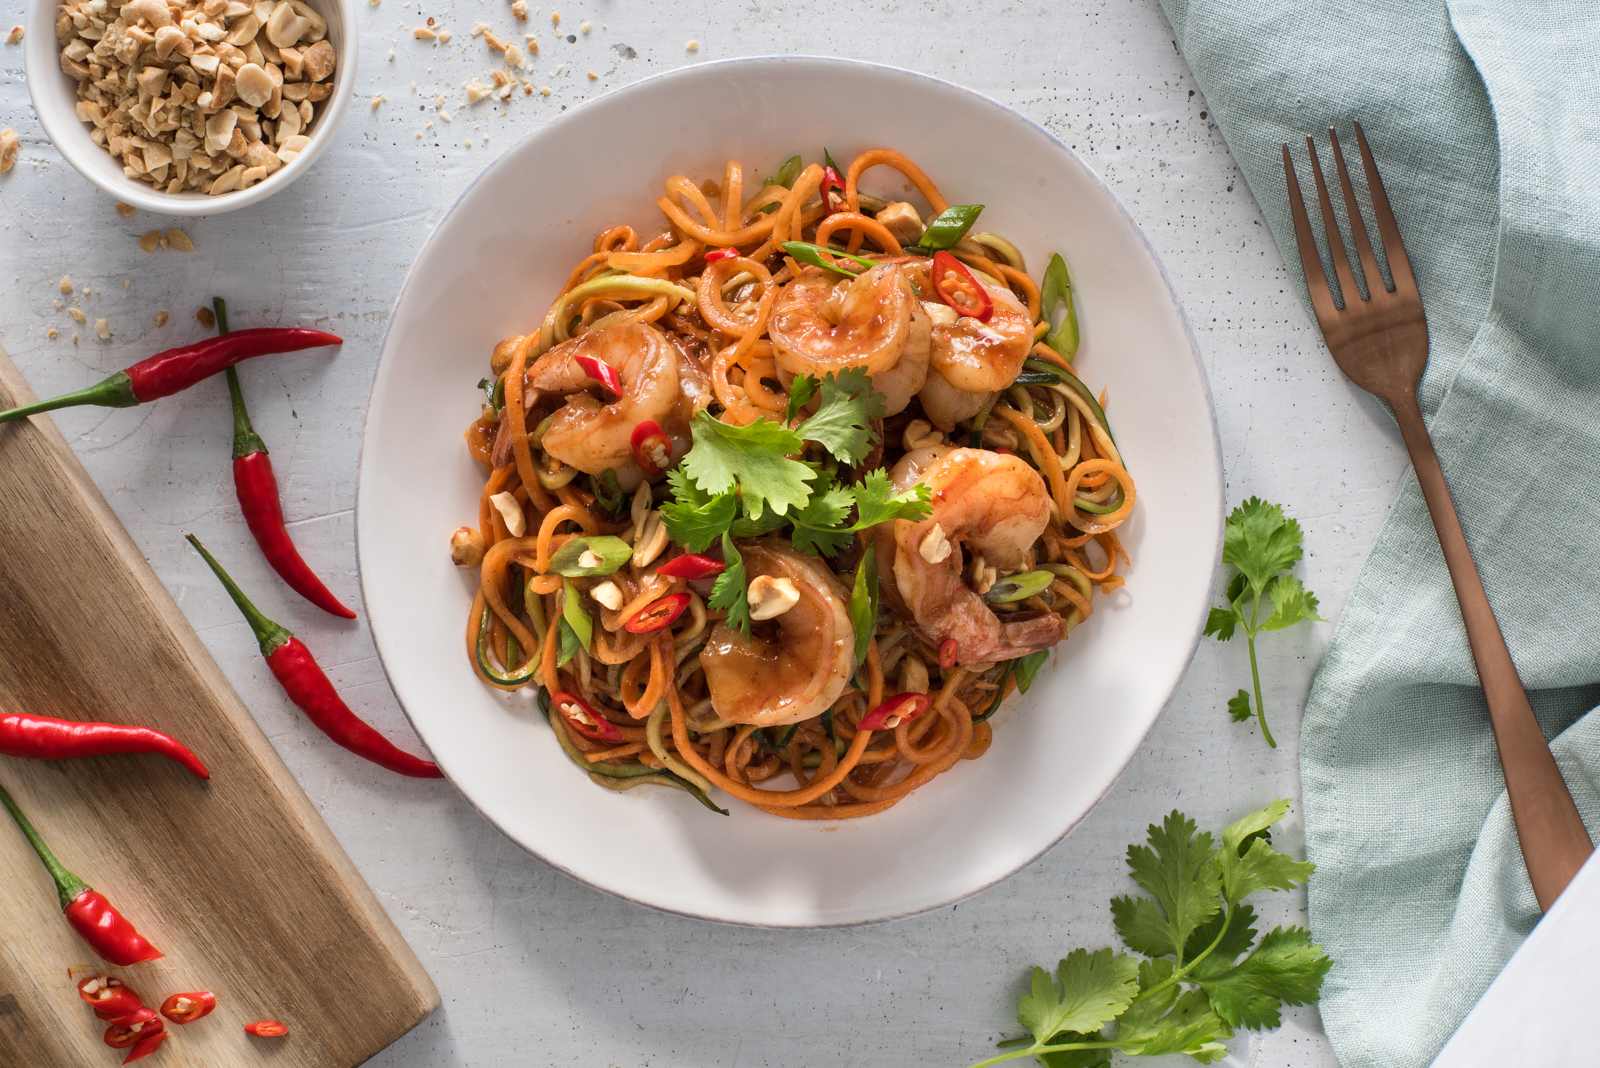 Made with spiralized zucchini and carrots, this low-carb pad Thai delivers big flavours.